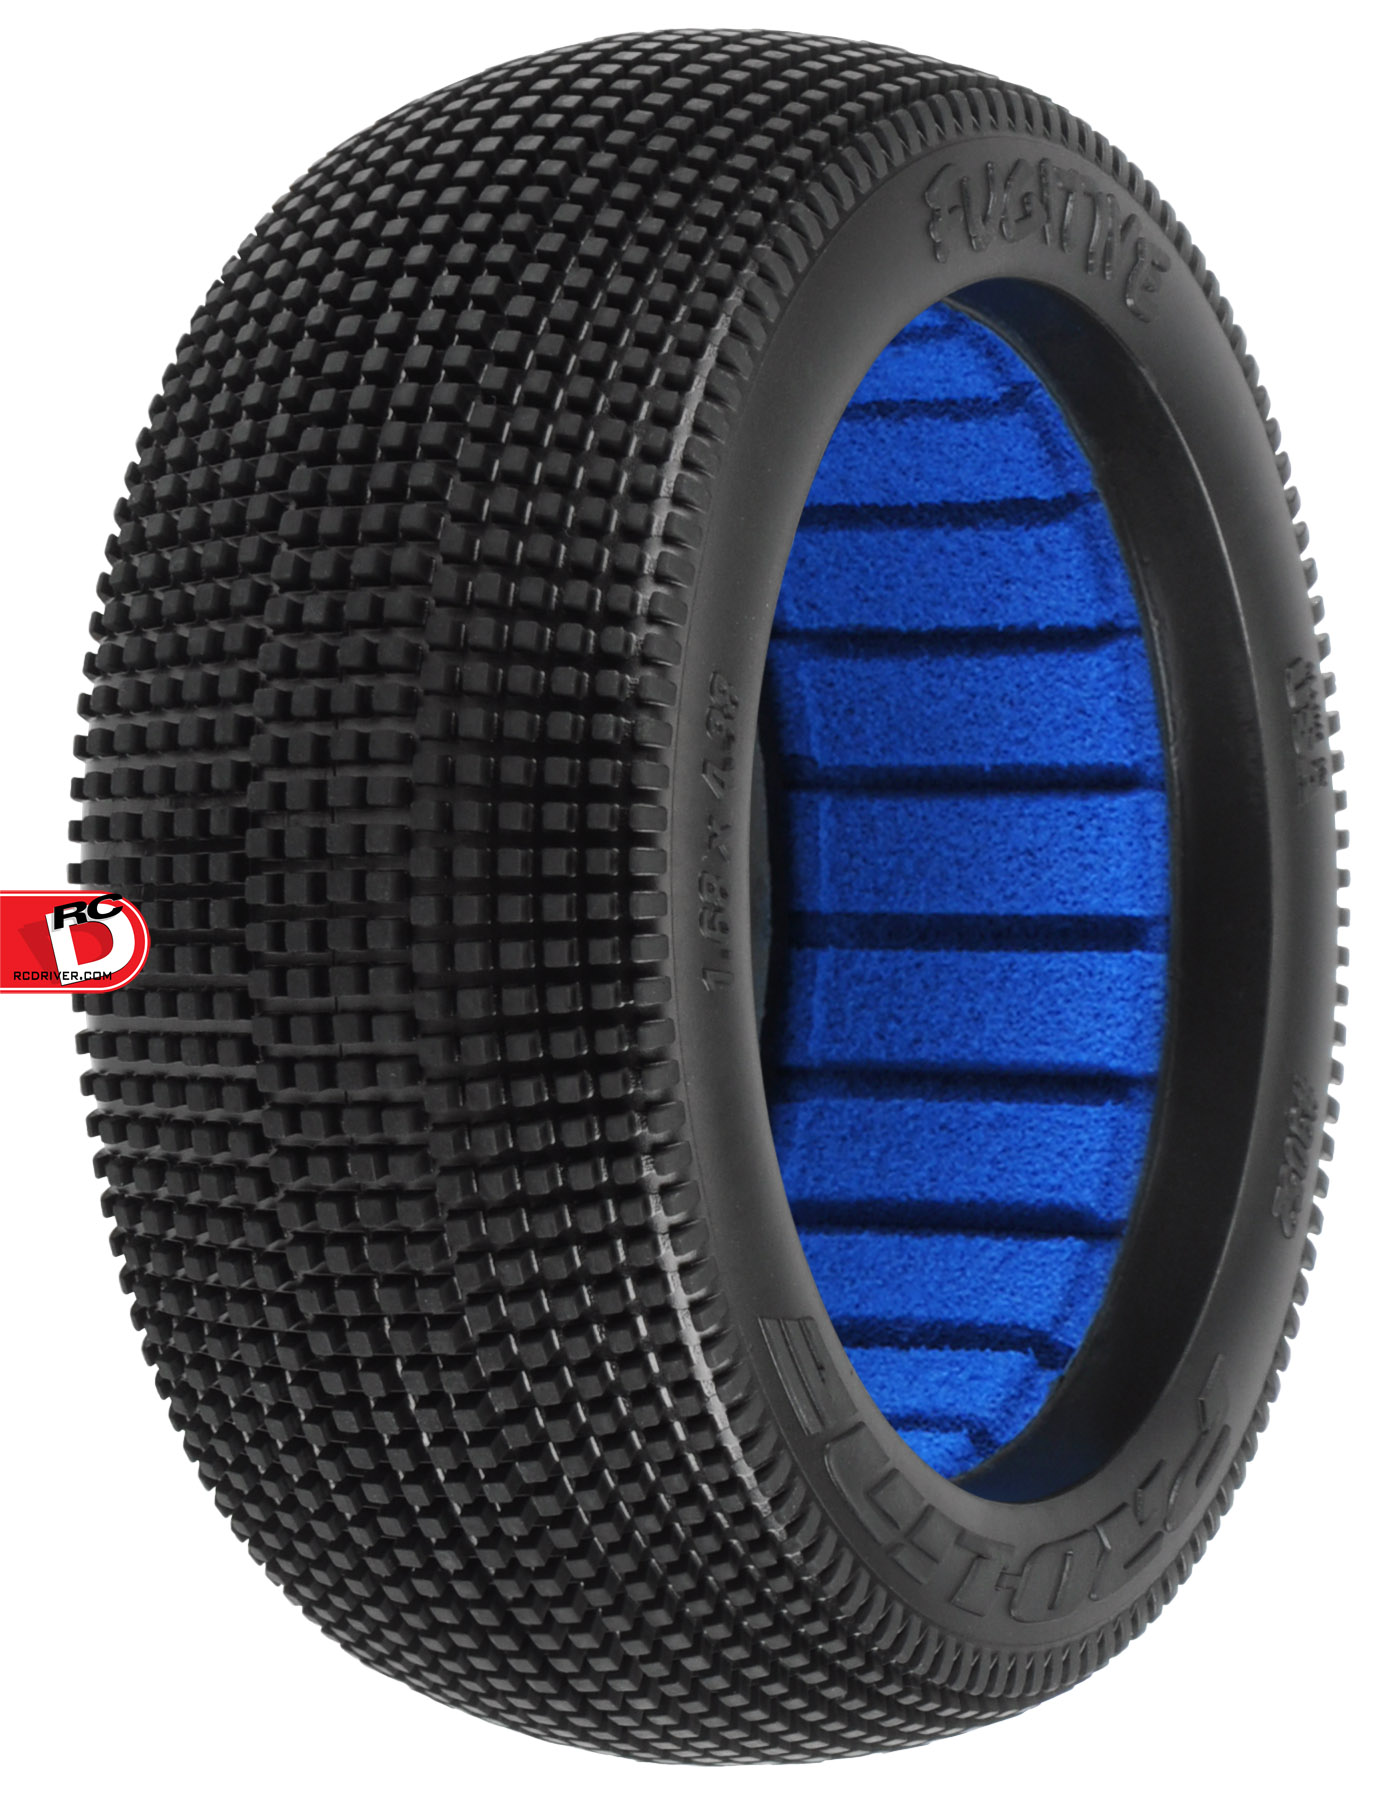 Pro-Line - Fugitive X1 (Firm) Off-Road 1-8 Buggy Tires copy